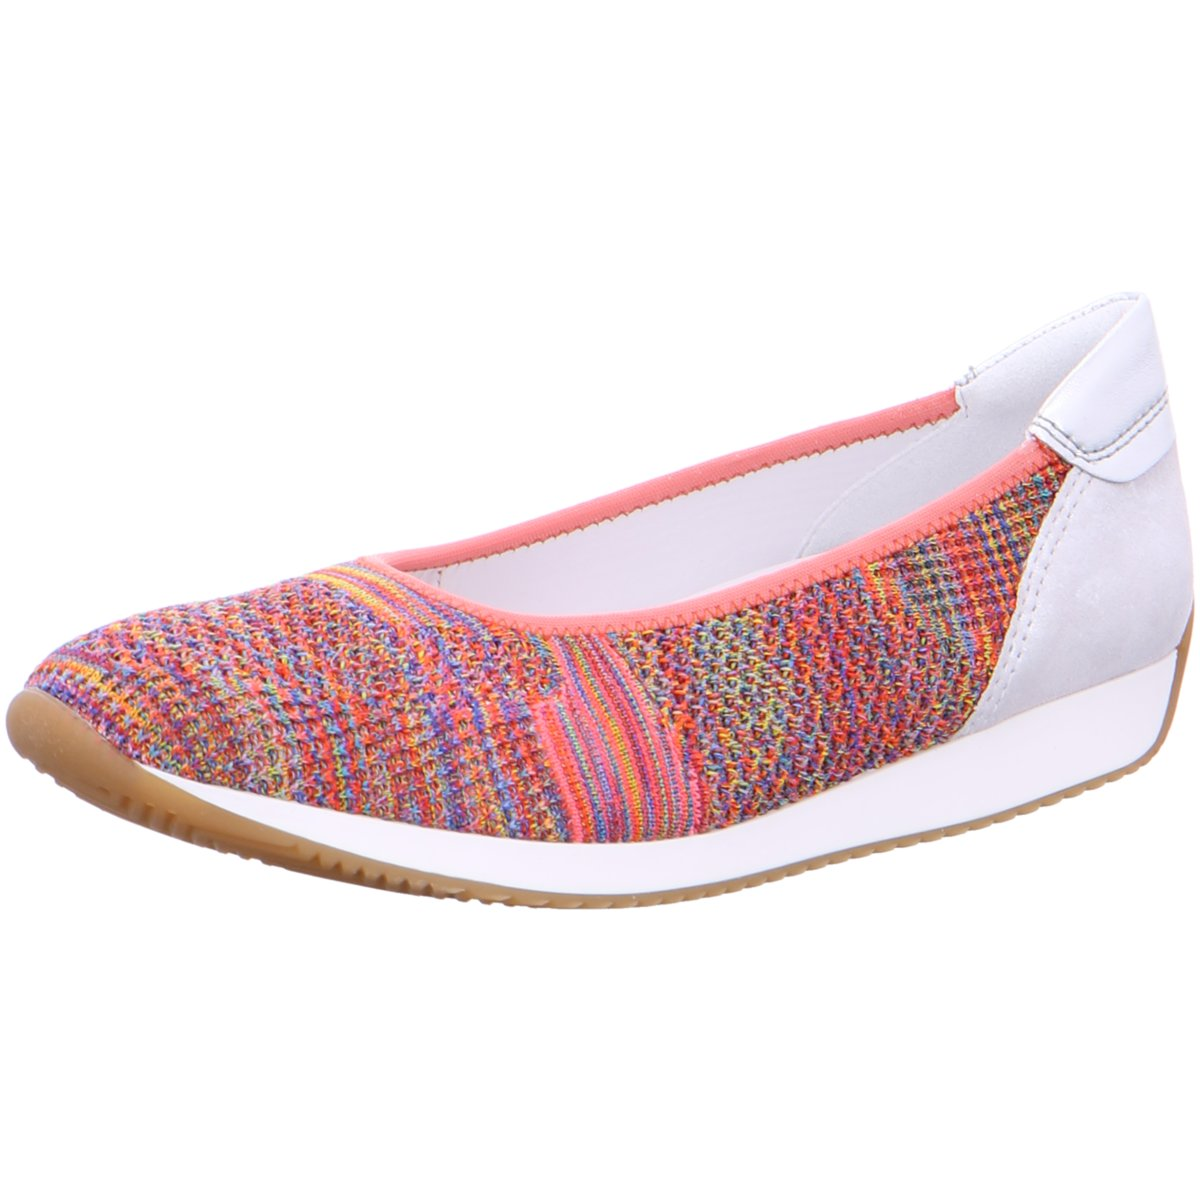 NEU ara Damen Slipper 12-15444-09 bunt 406622